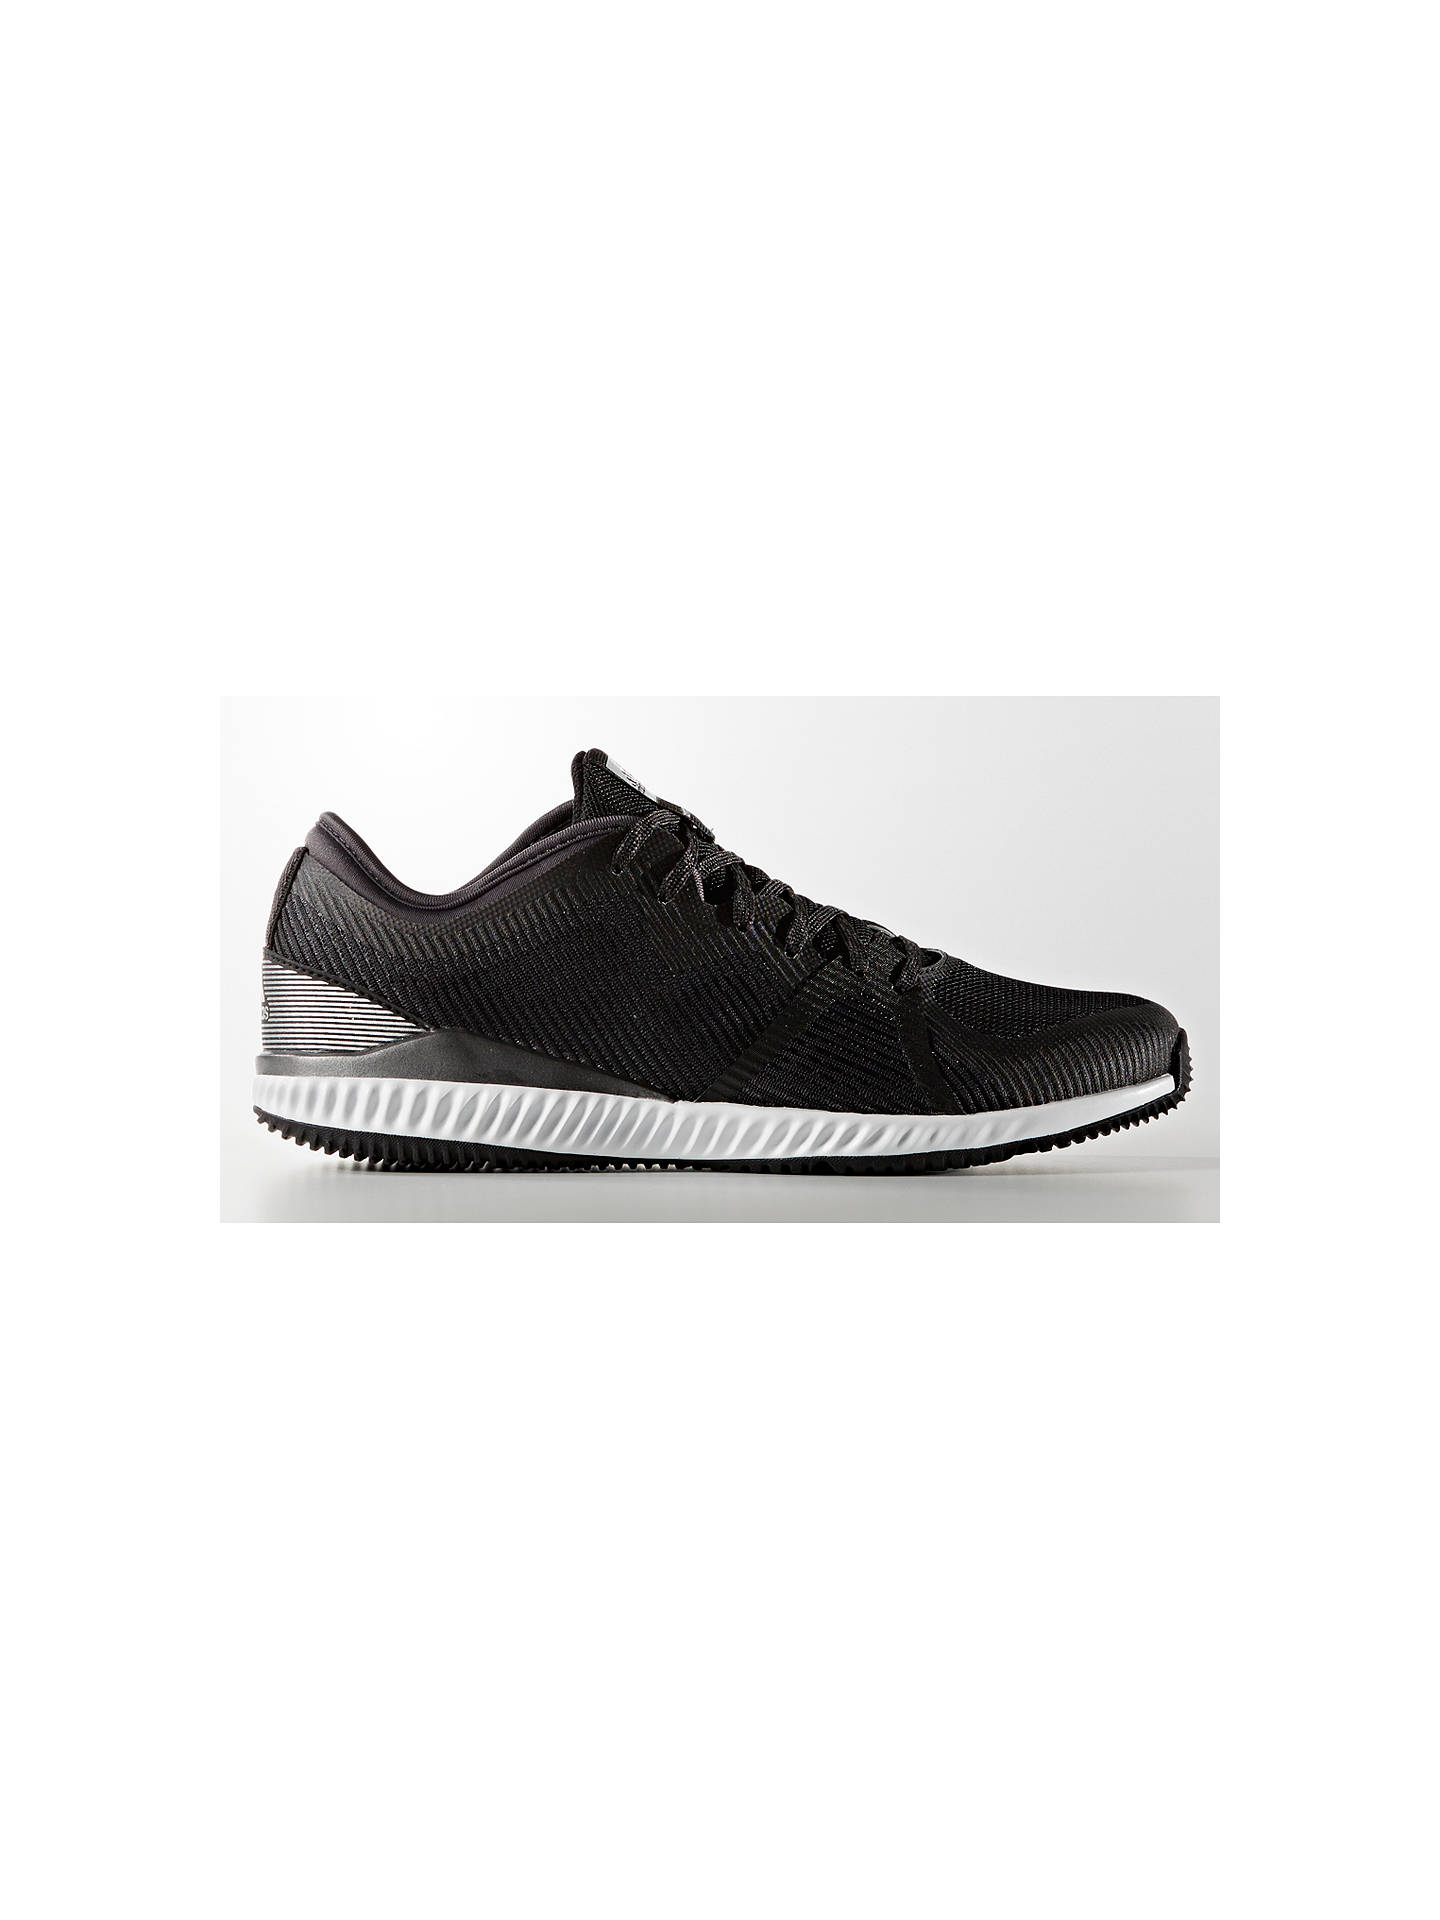 6c9d144b5a4c3 Buy Adidas Edge Bounce Women s Cross Trainers